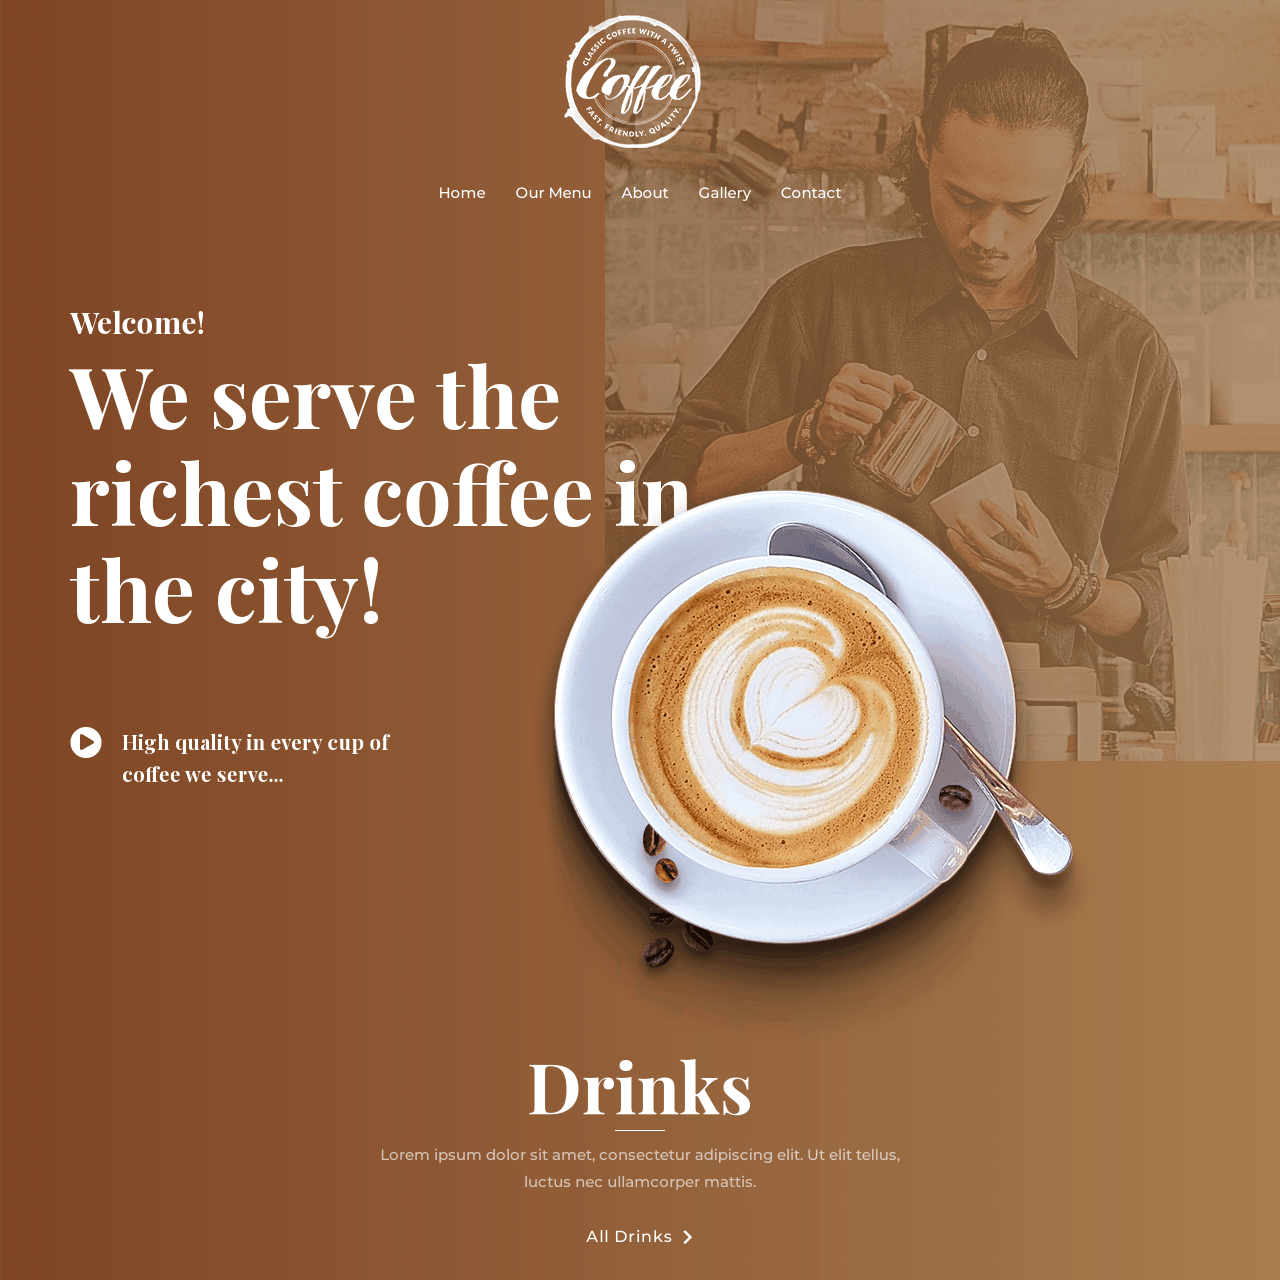 coffee-shop-website-design